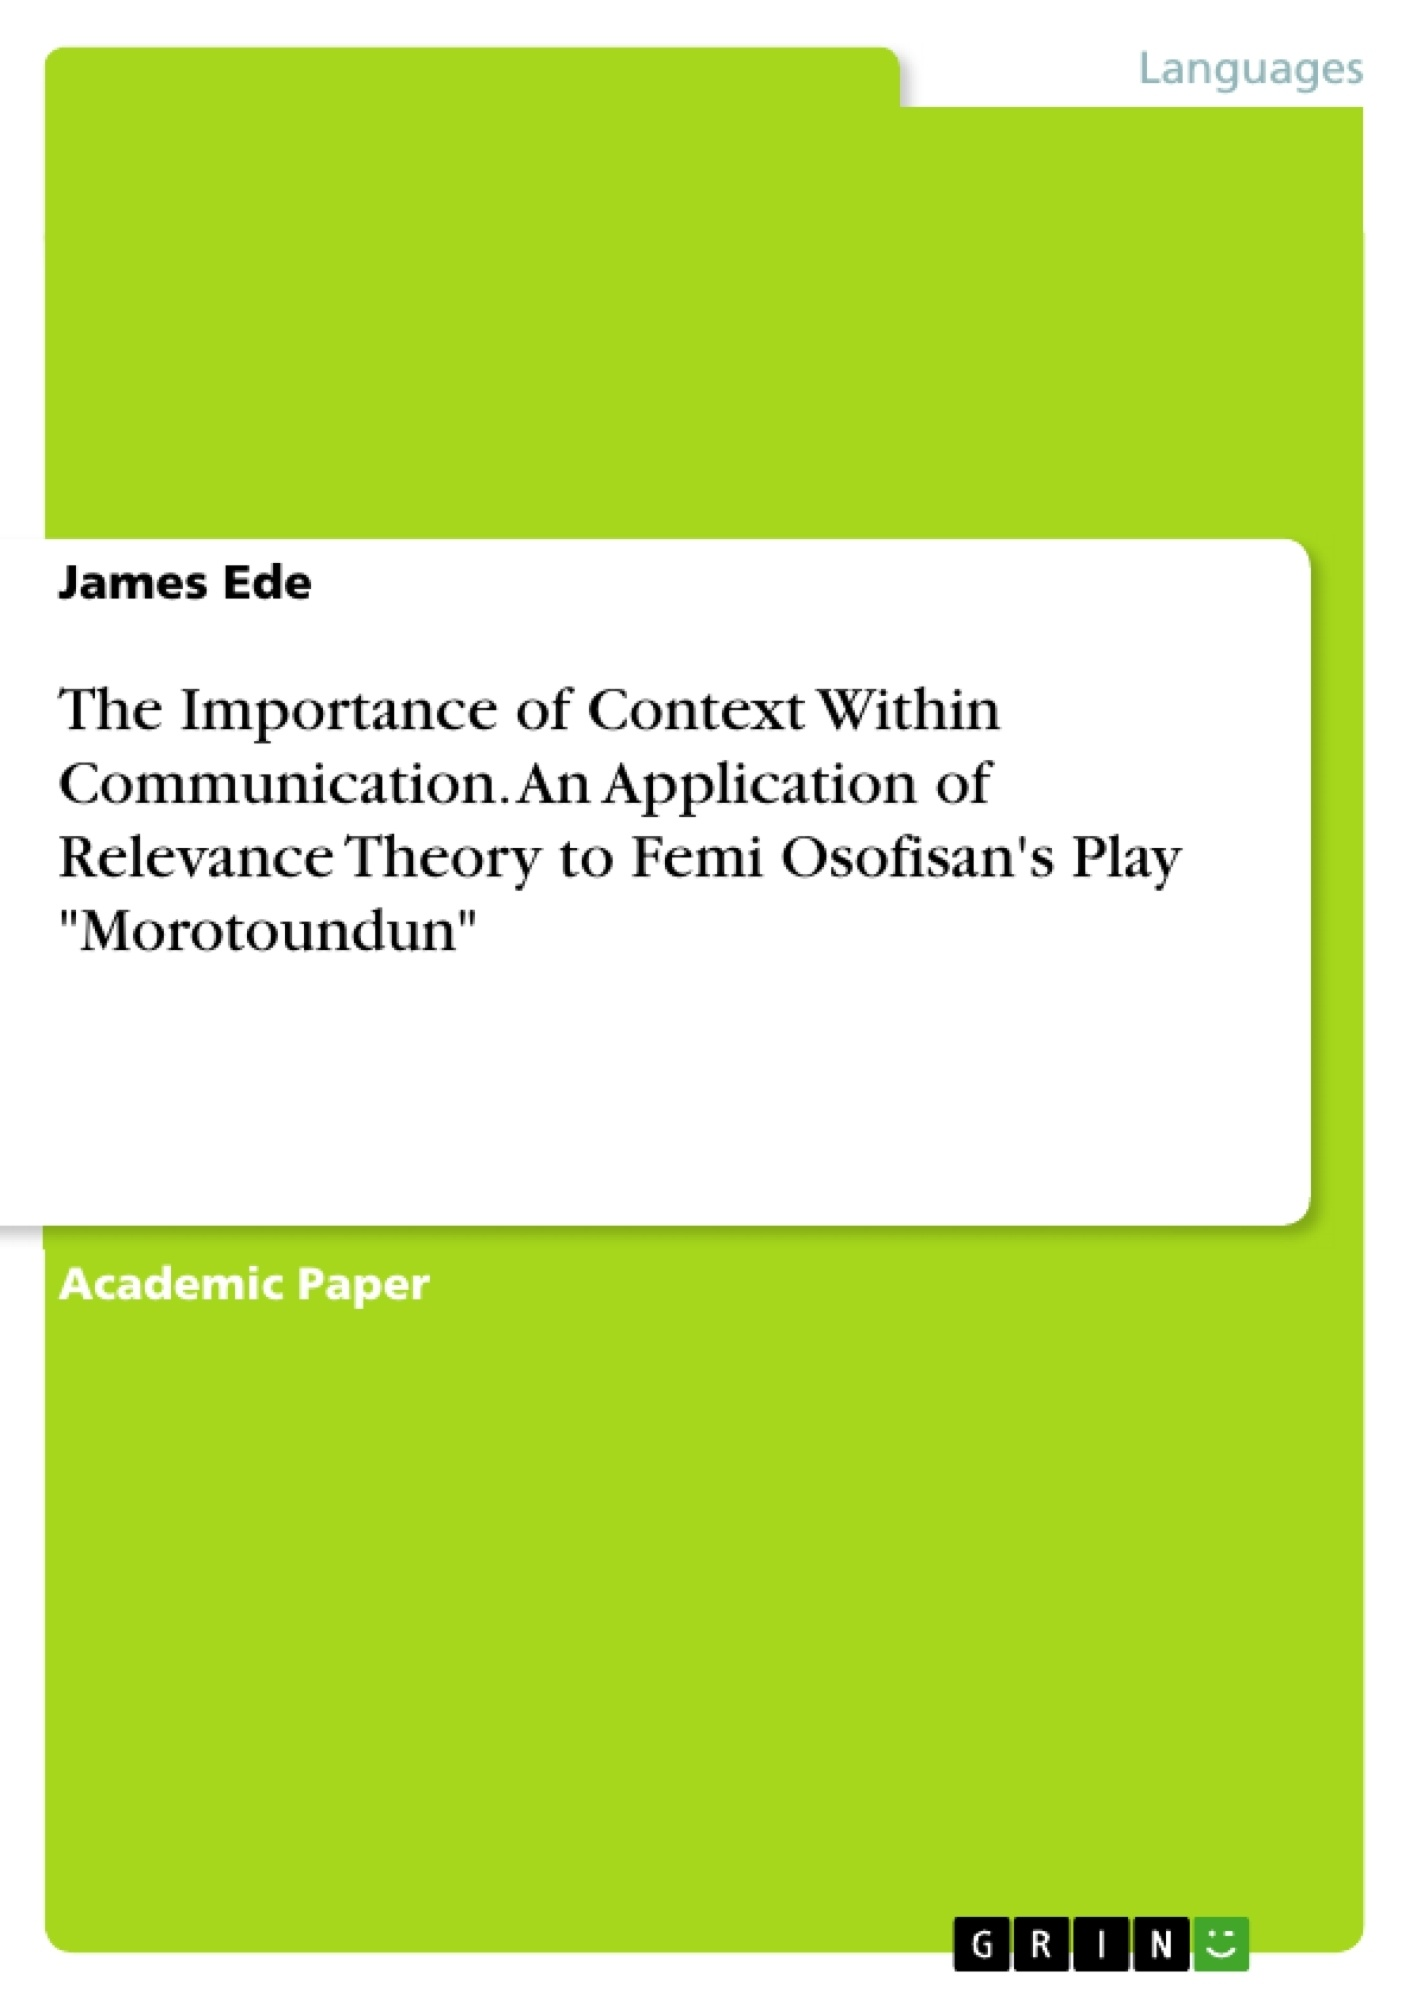 """Title: The Importance of Context Within Communication. An Application of Relevance Theory to Femi Osofisan's  Play """"Morotoundun"""""""